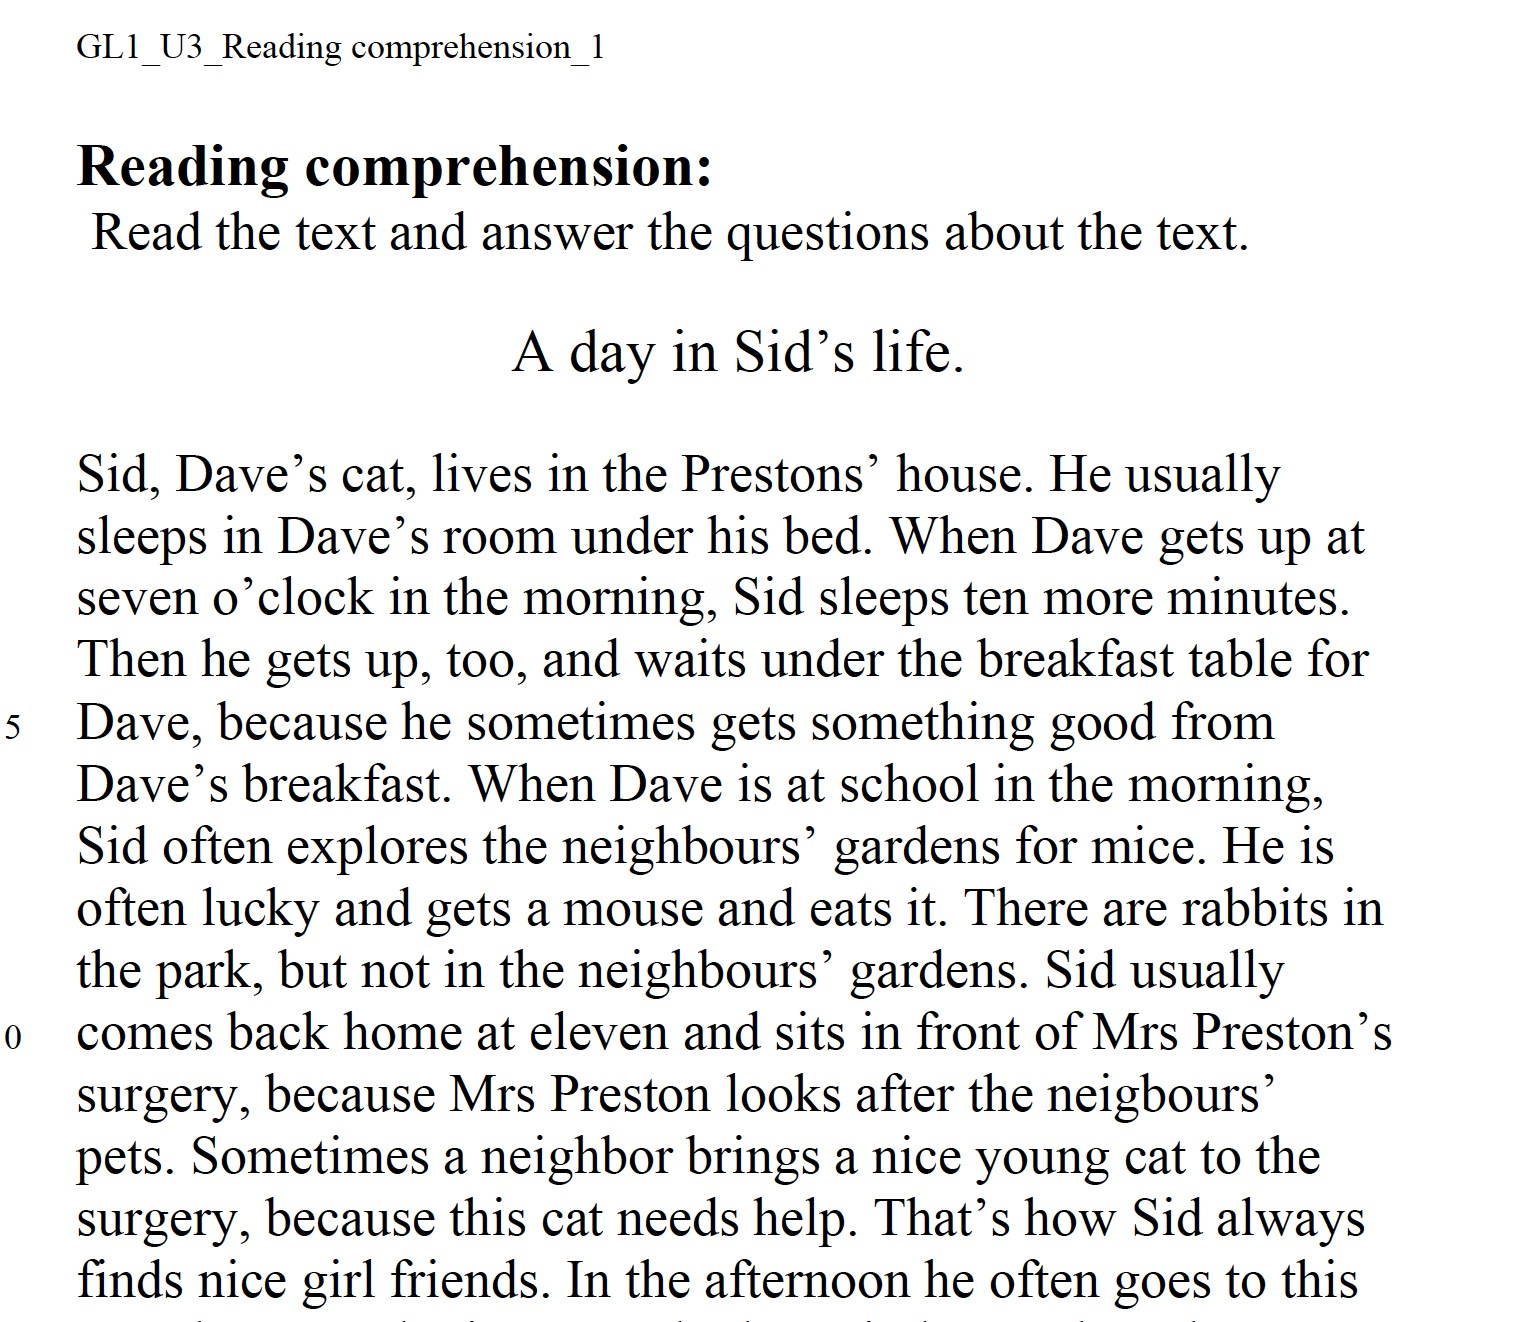 GL1_U3_reading comprehension_1_a